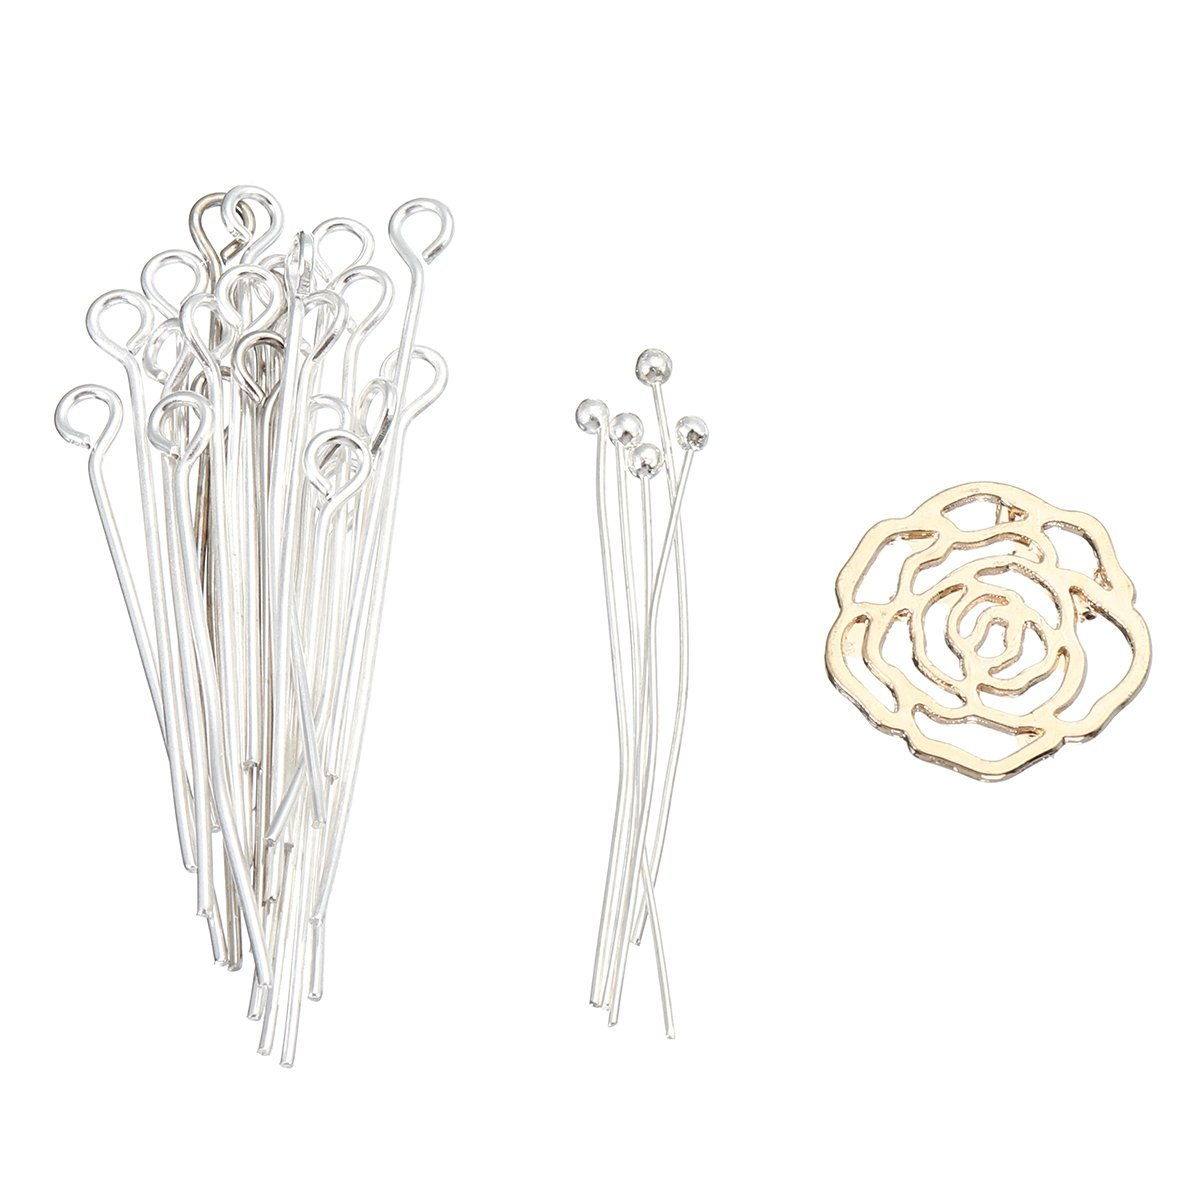 Jeteven Jewellery Making Kit Jewellery Finding Kit for DIY Your Earrings